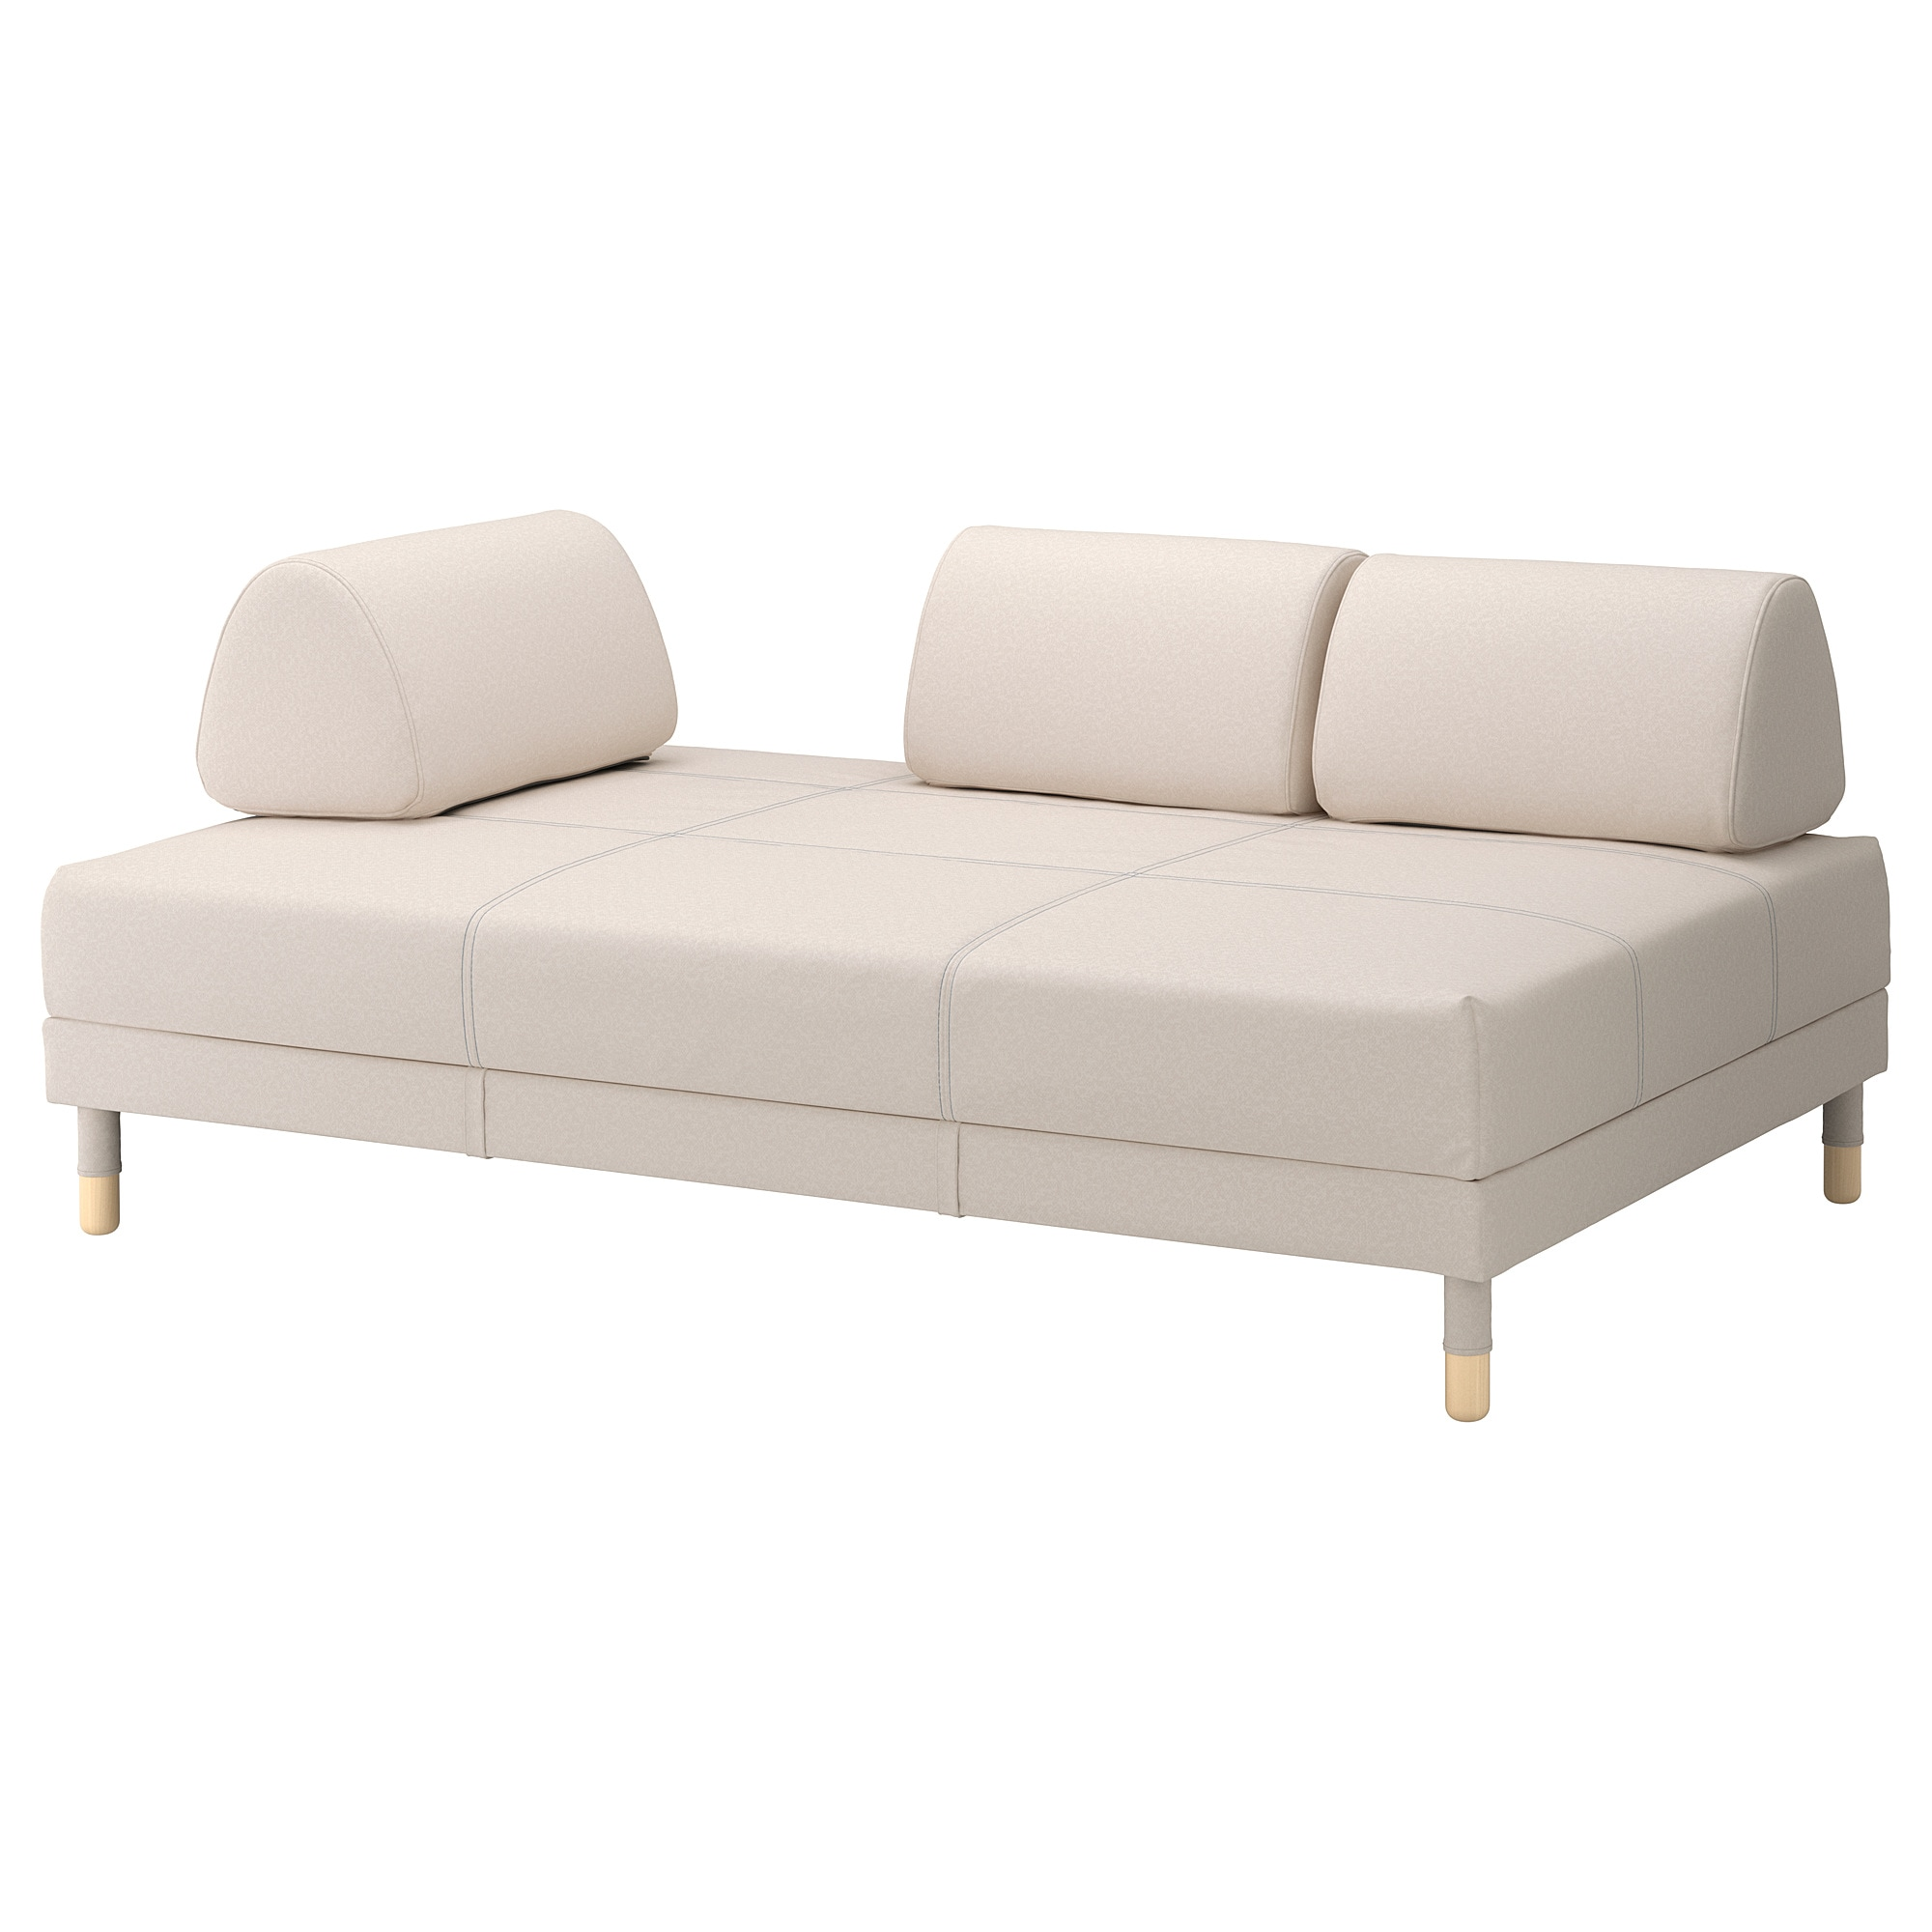 Sofas rinconeras ikea amazing sofa malviken plazas ikea for Sofas baratos madrid outlet